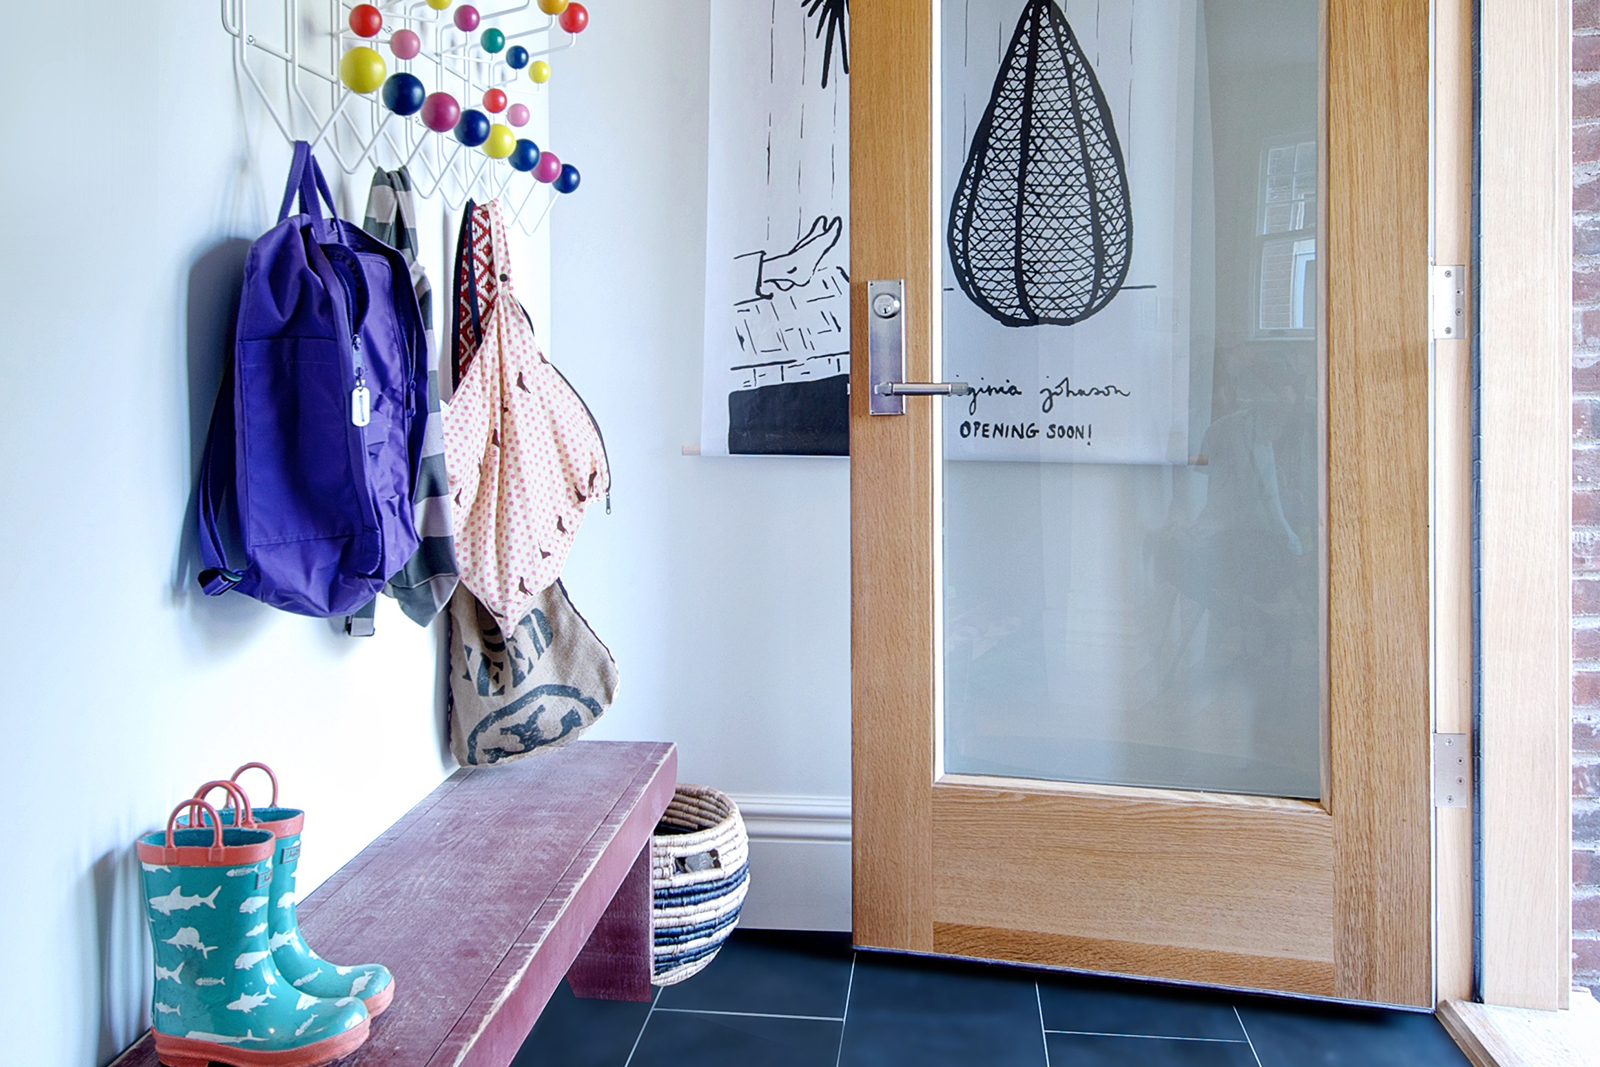 A bright entryway with colorful coat hanger and backpacks